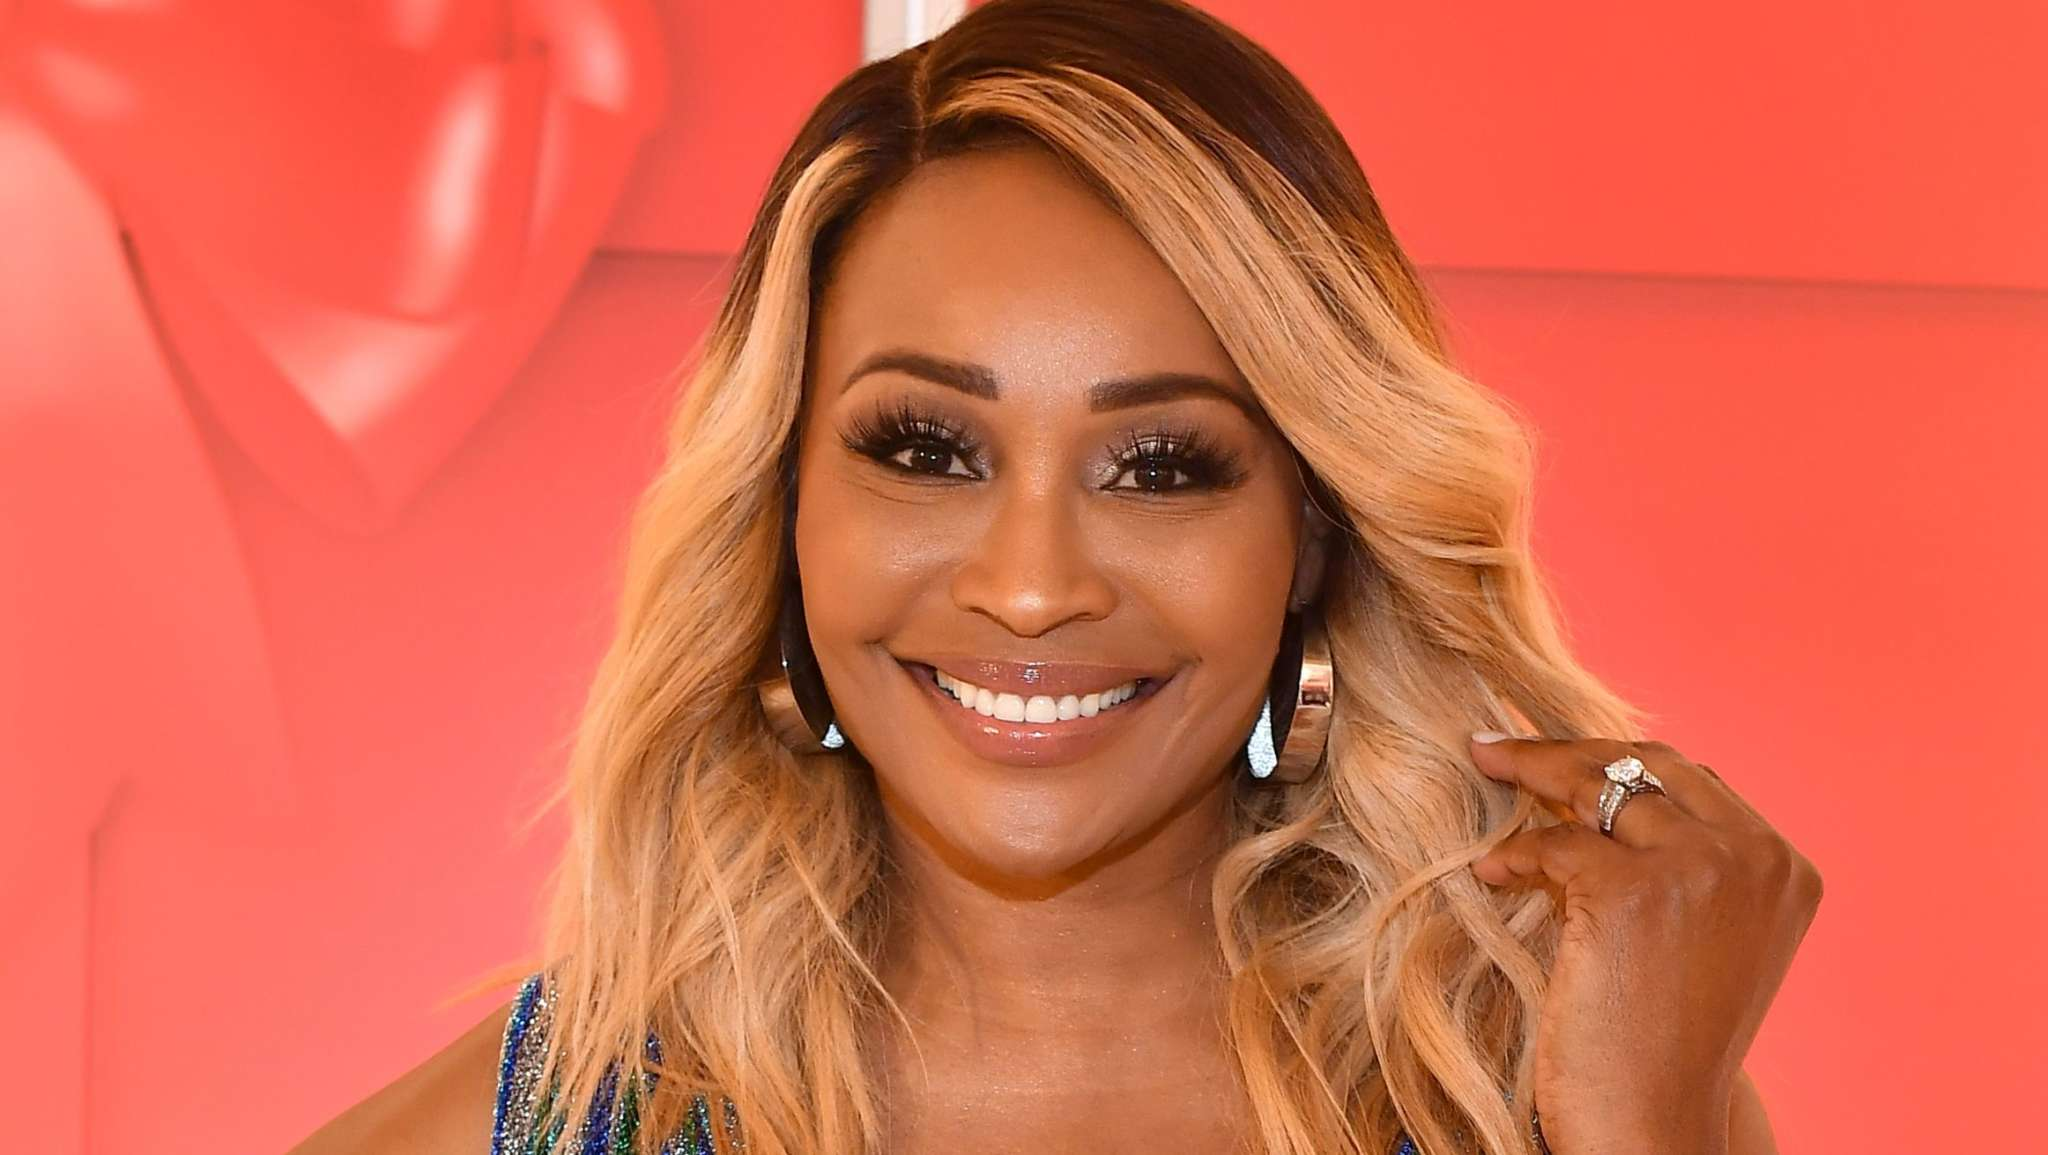 Cynthia Bailey Impresses Fans With These Throwback Modeling Photos